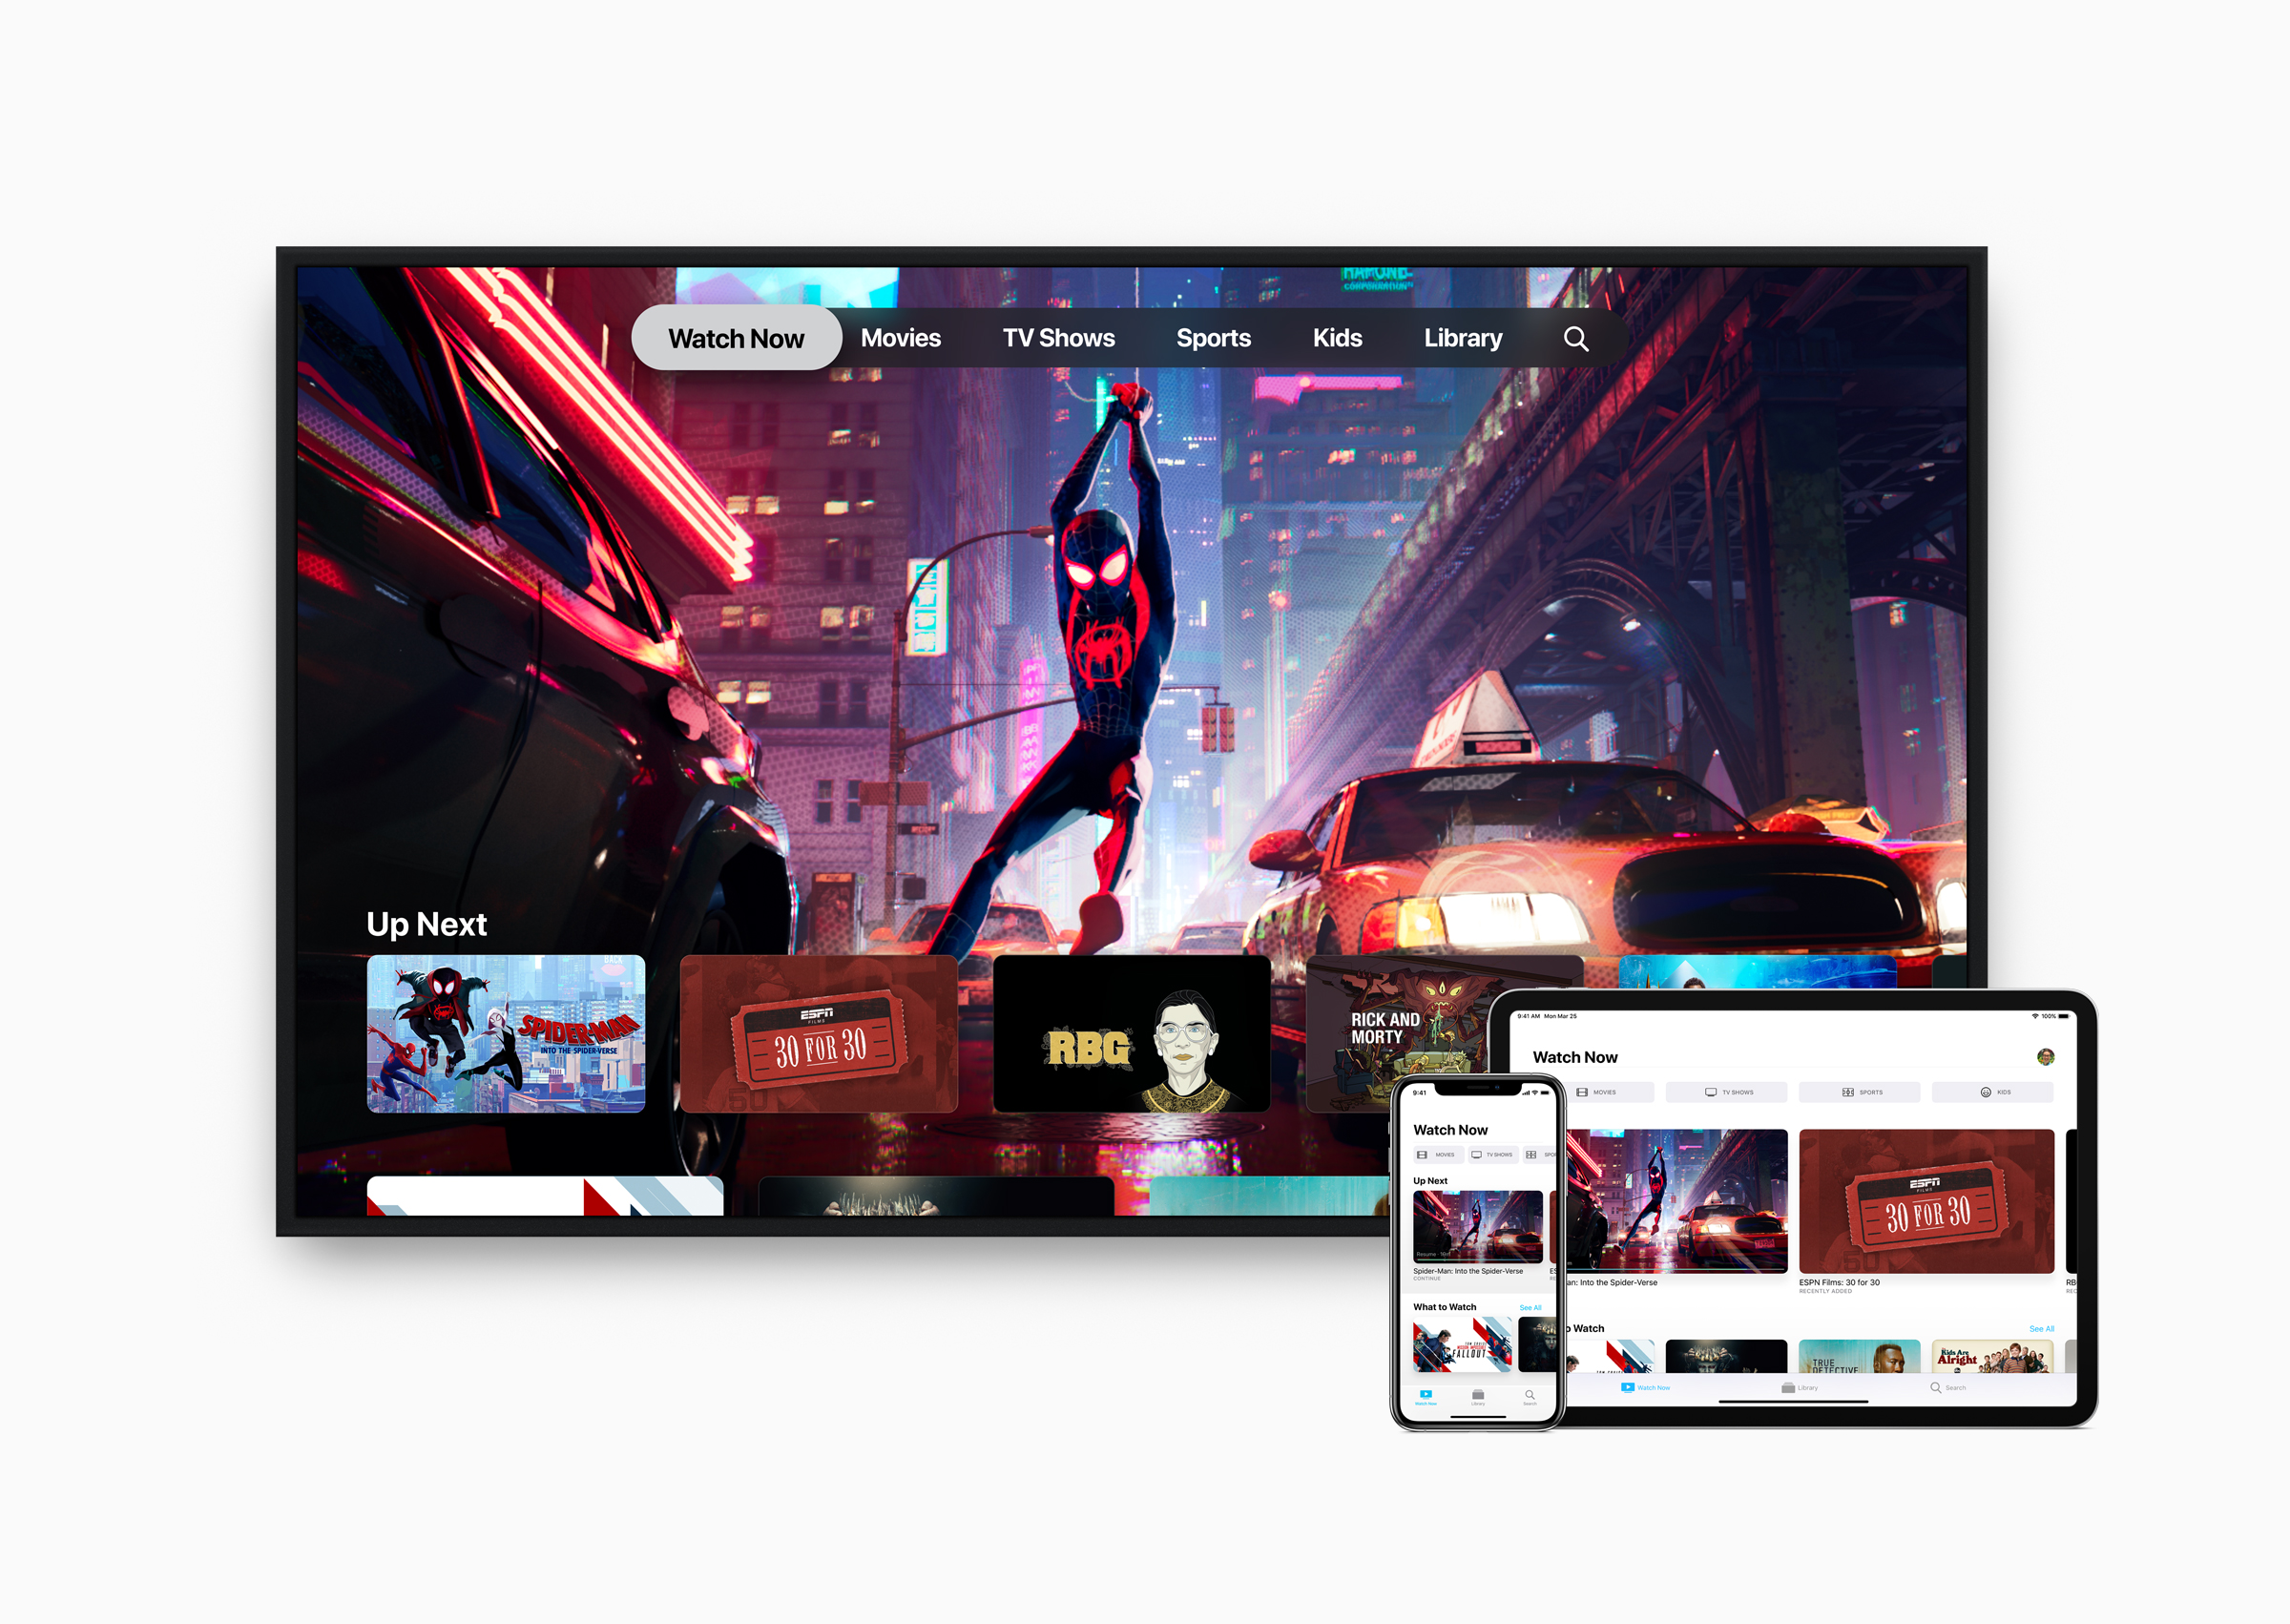 The Apple TV app lets viewers subscribe to Channels, and soon, TV+